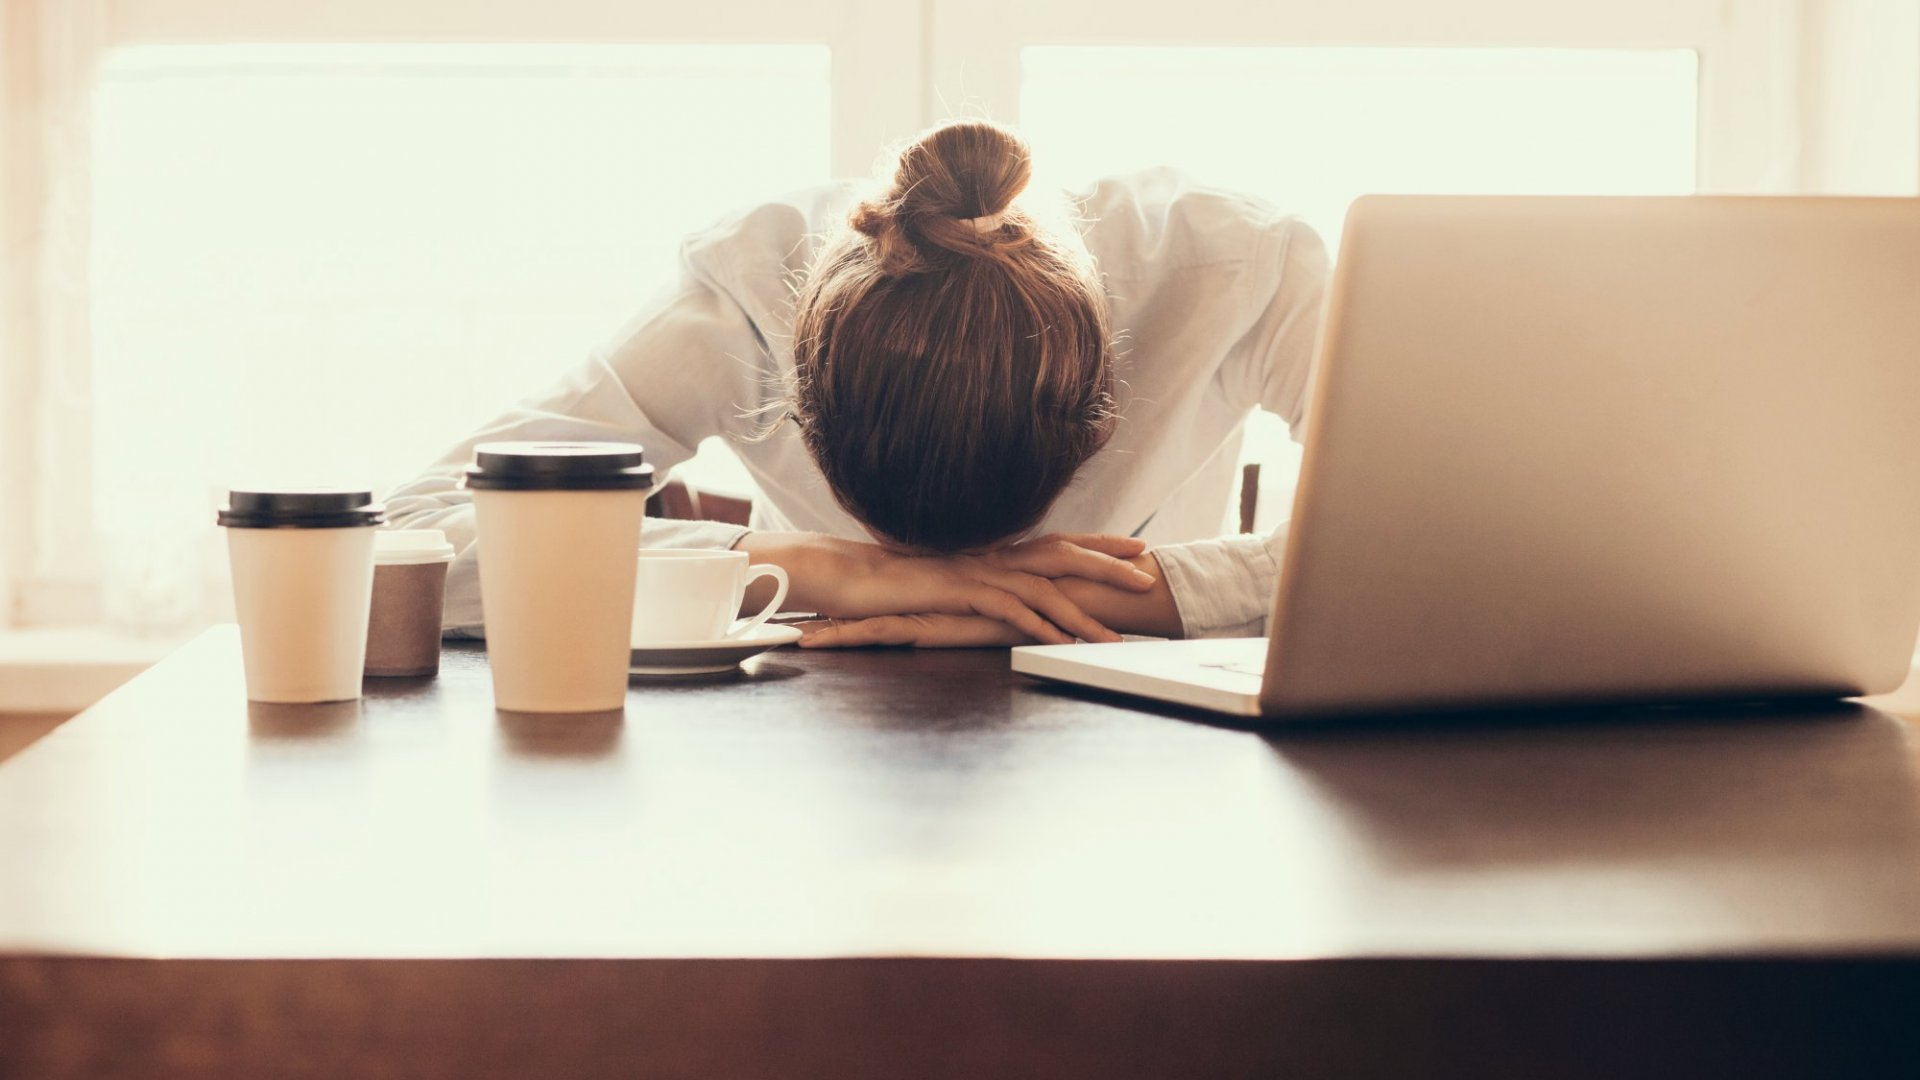 The 5 Top Email Mistakes That Could Kill Your Deal (or End Your Career)